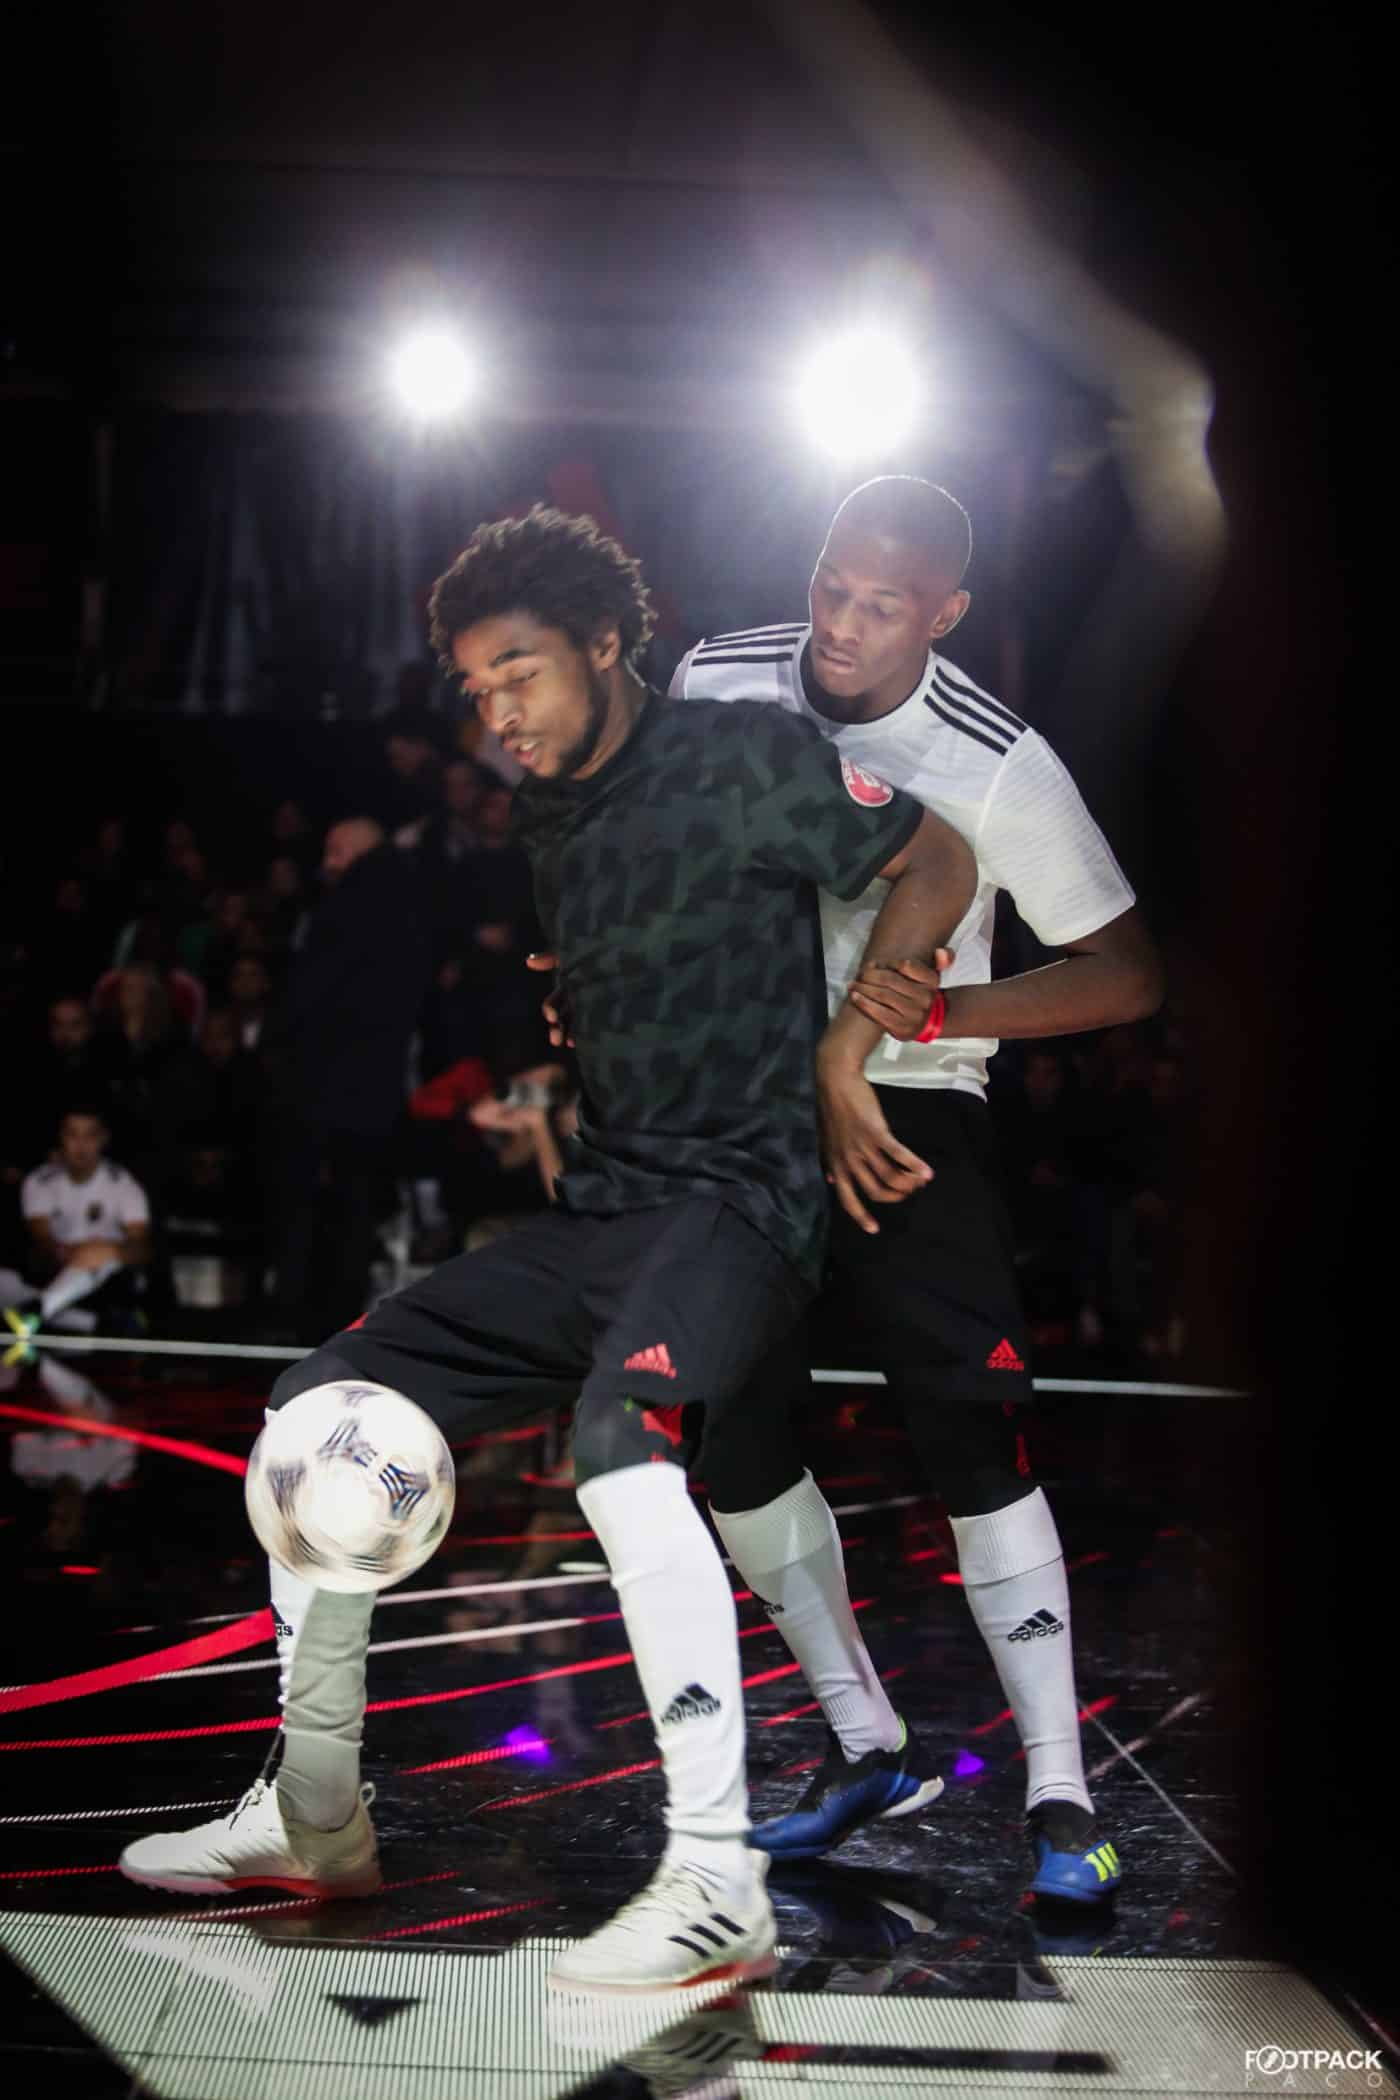 adidas-finale-tango-league-2018-paris-footpack-26